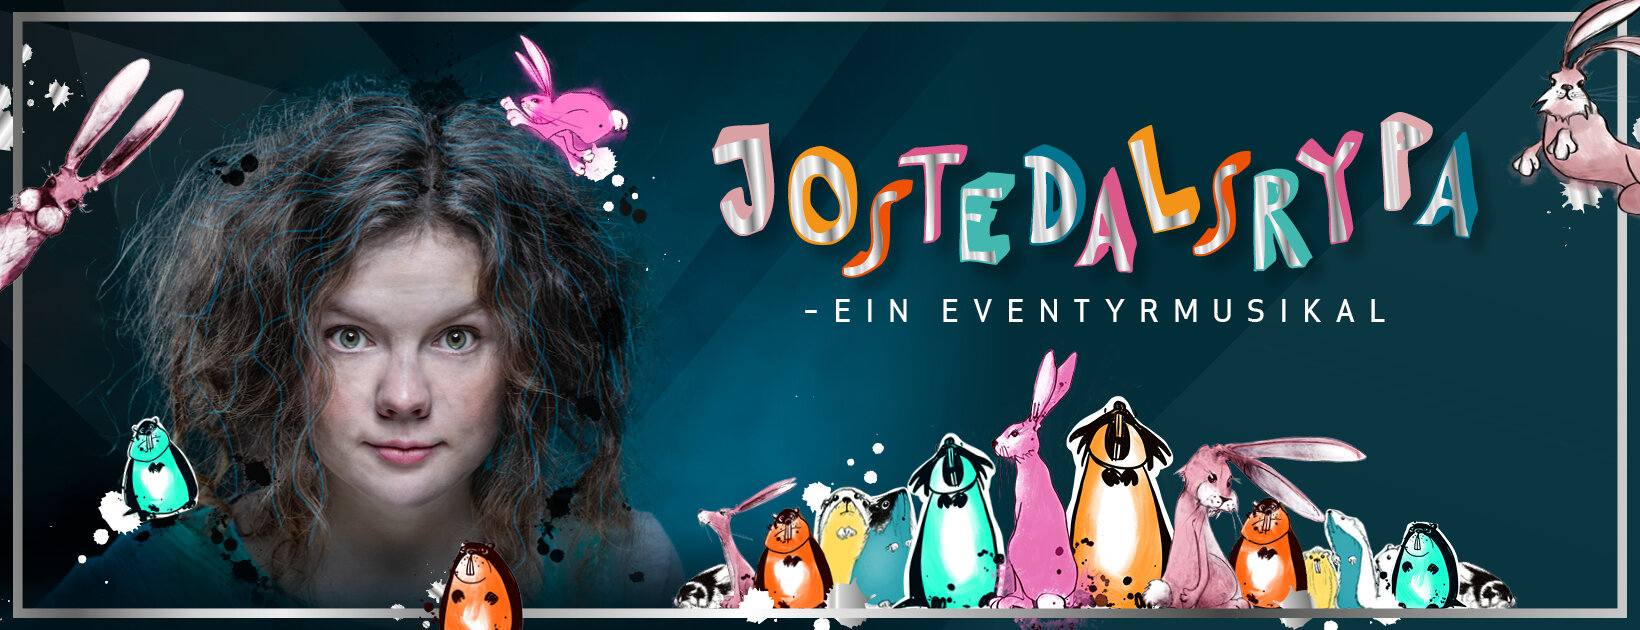 Jostedalsrypa_FB_Cover_820x315px.jpg